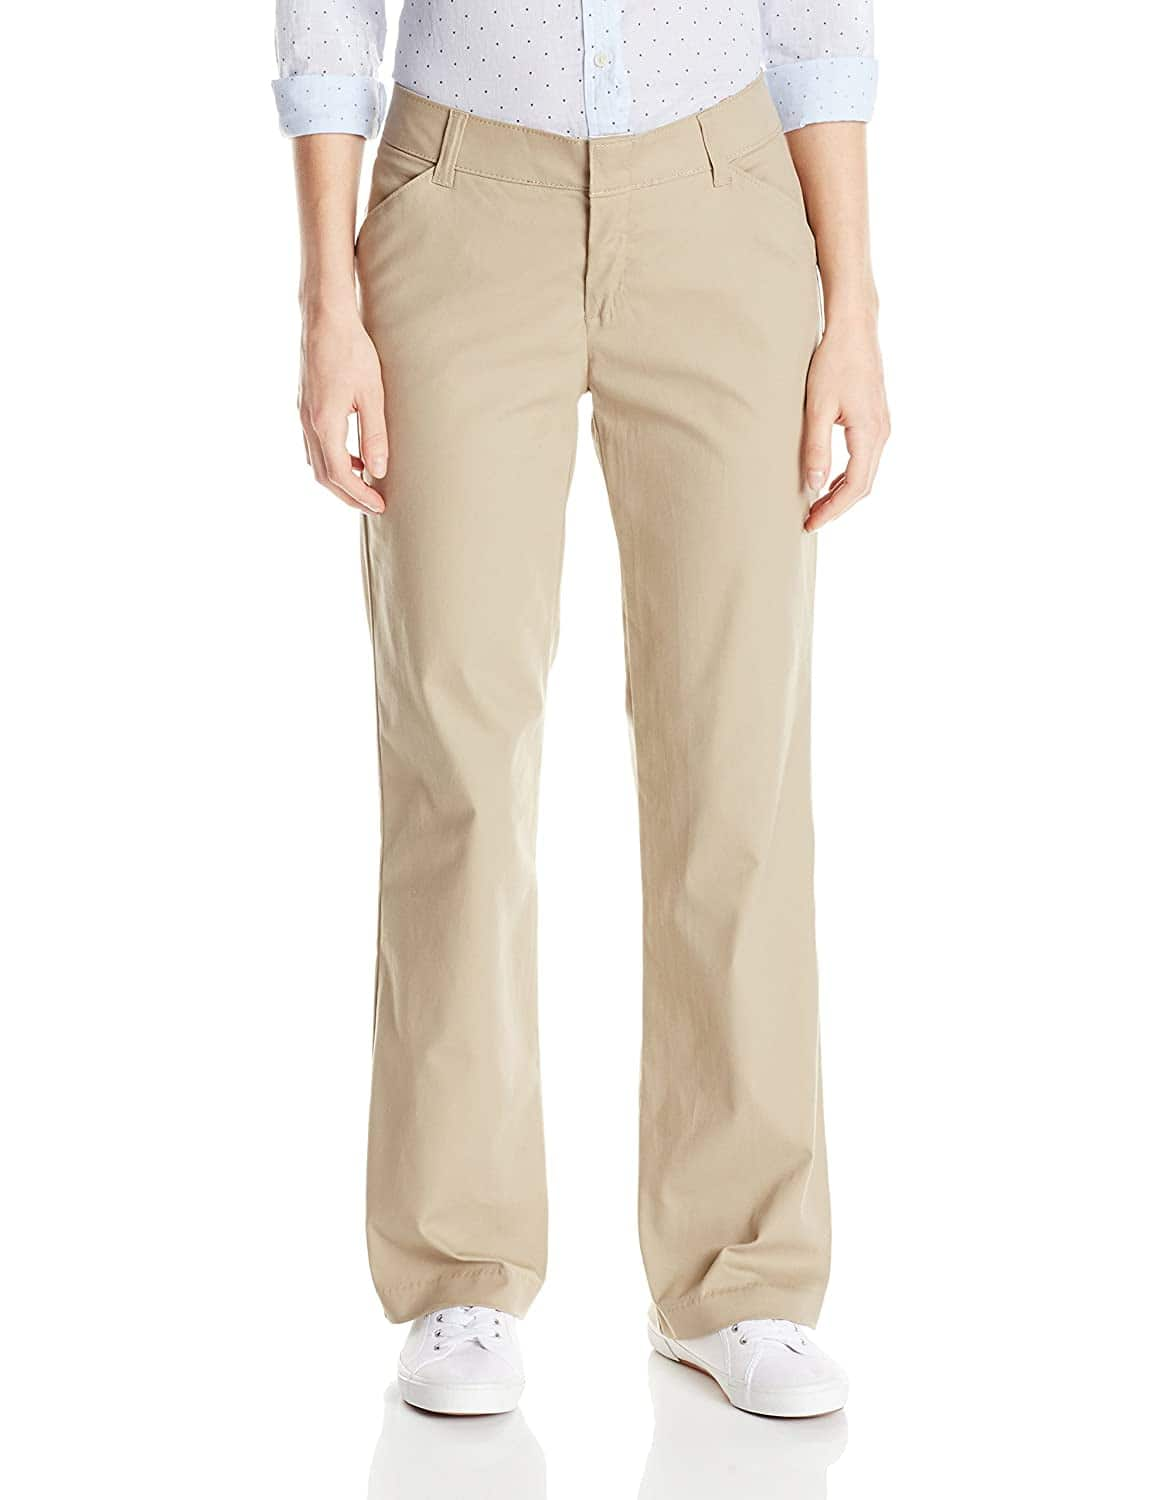 Dickies Women's Relaxed Straight Stretch Twill Pant @ Amazon $4.28.